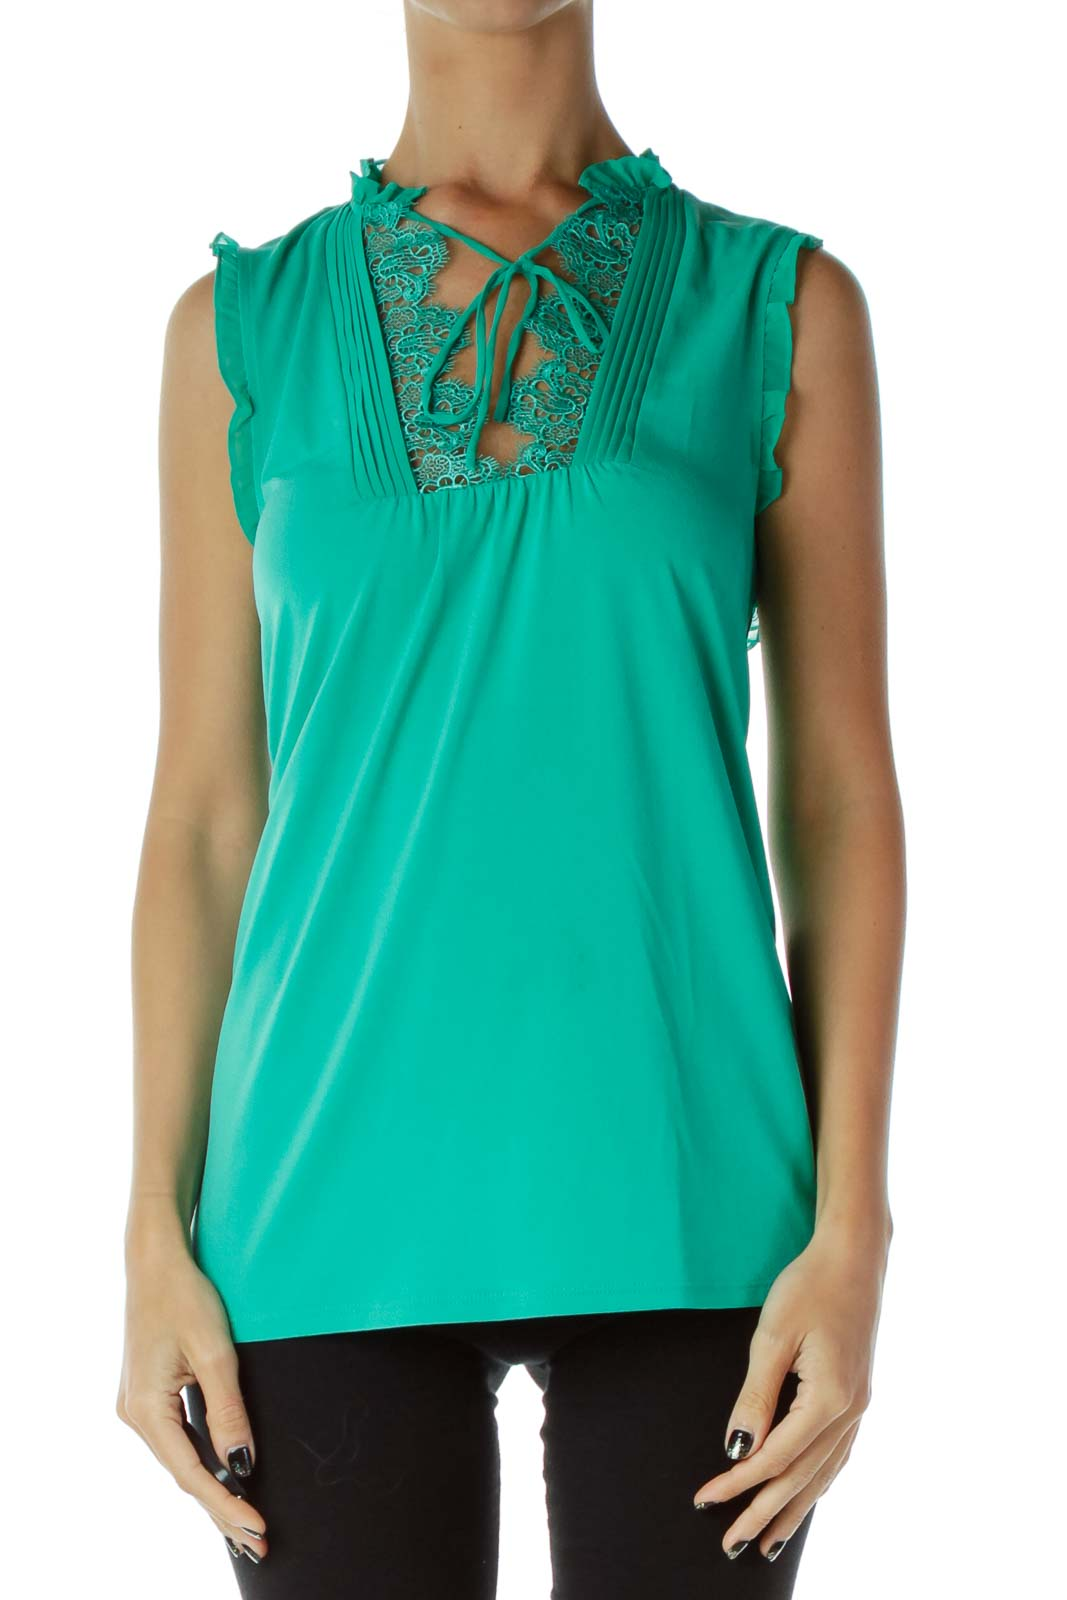 Green Laced Tank Top